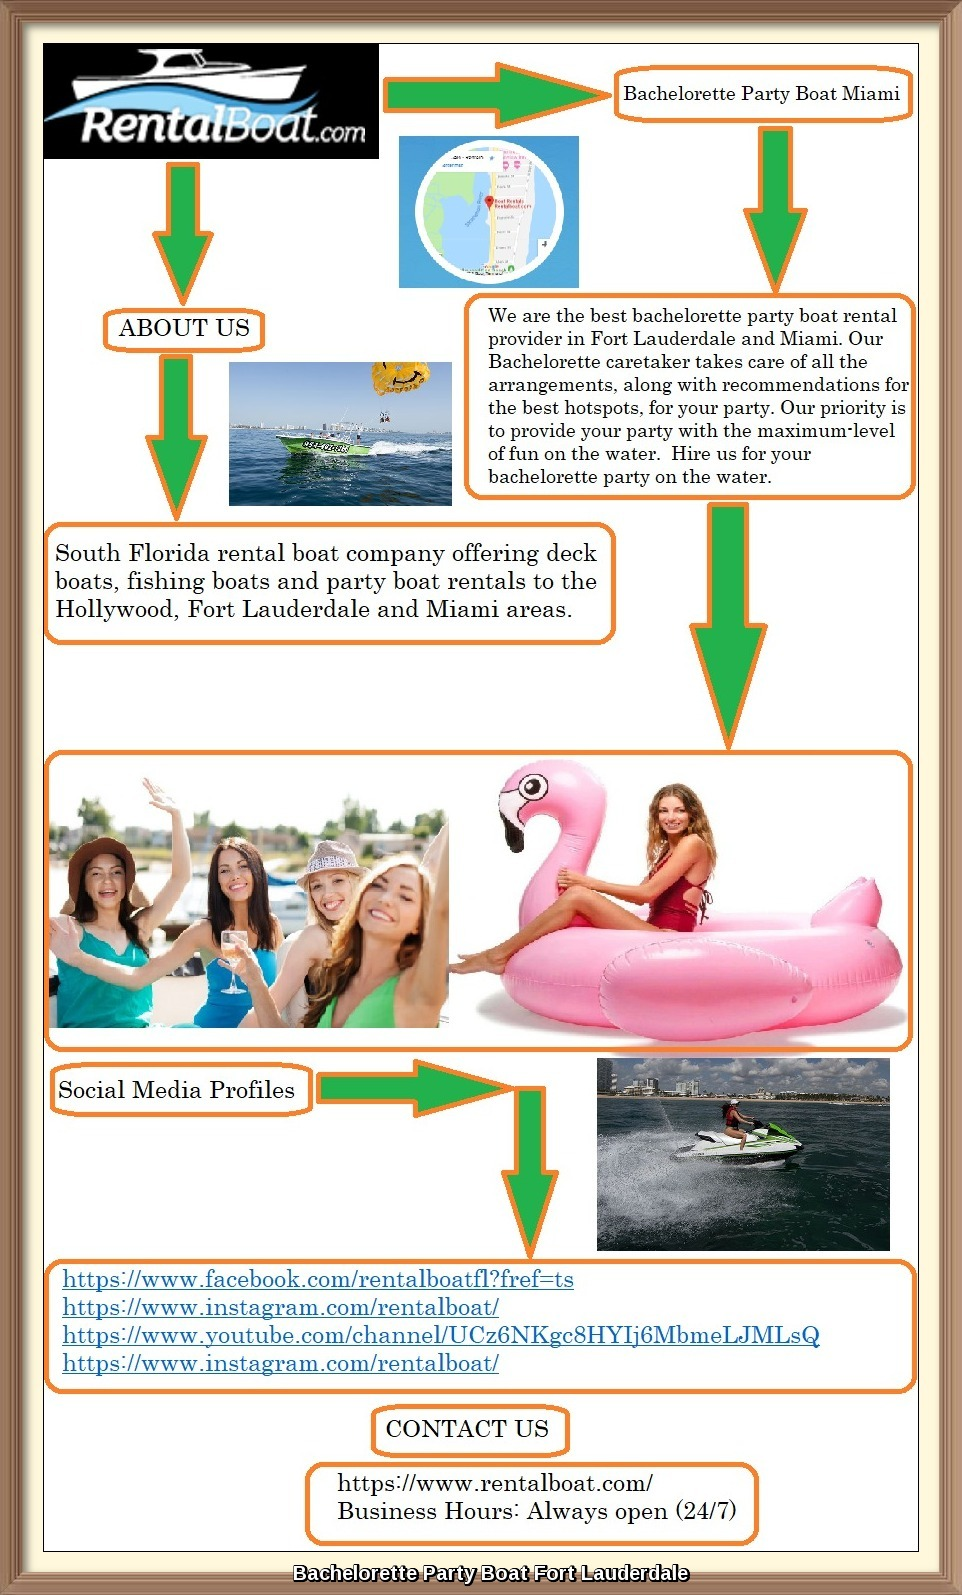 Welcome to our Blog Rentalboat: Bachelorette Party Boat